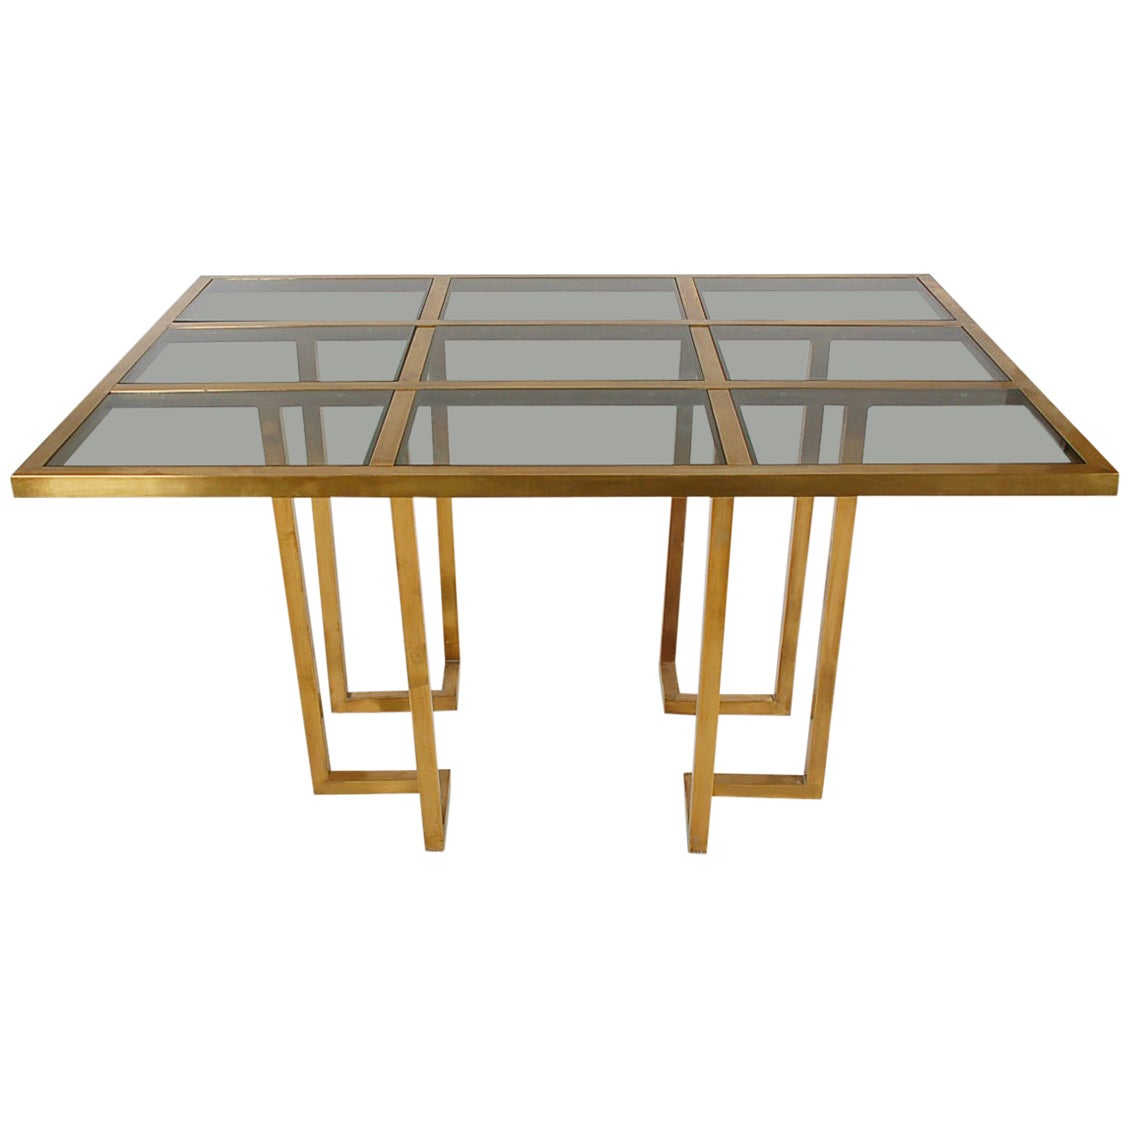 French Hollywood Regency Brass and Glass Grid Dining Table after Mastercraft